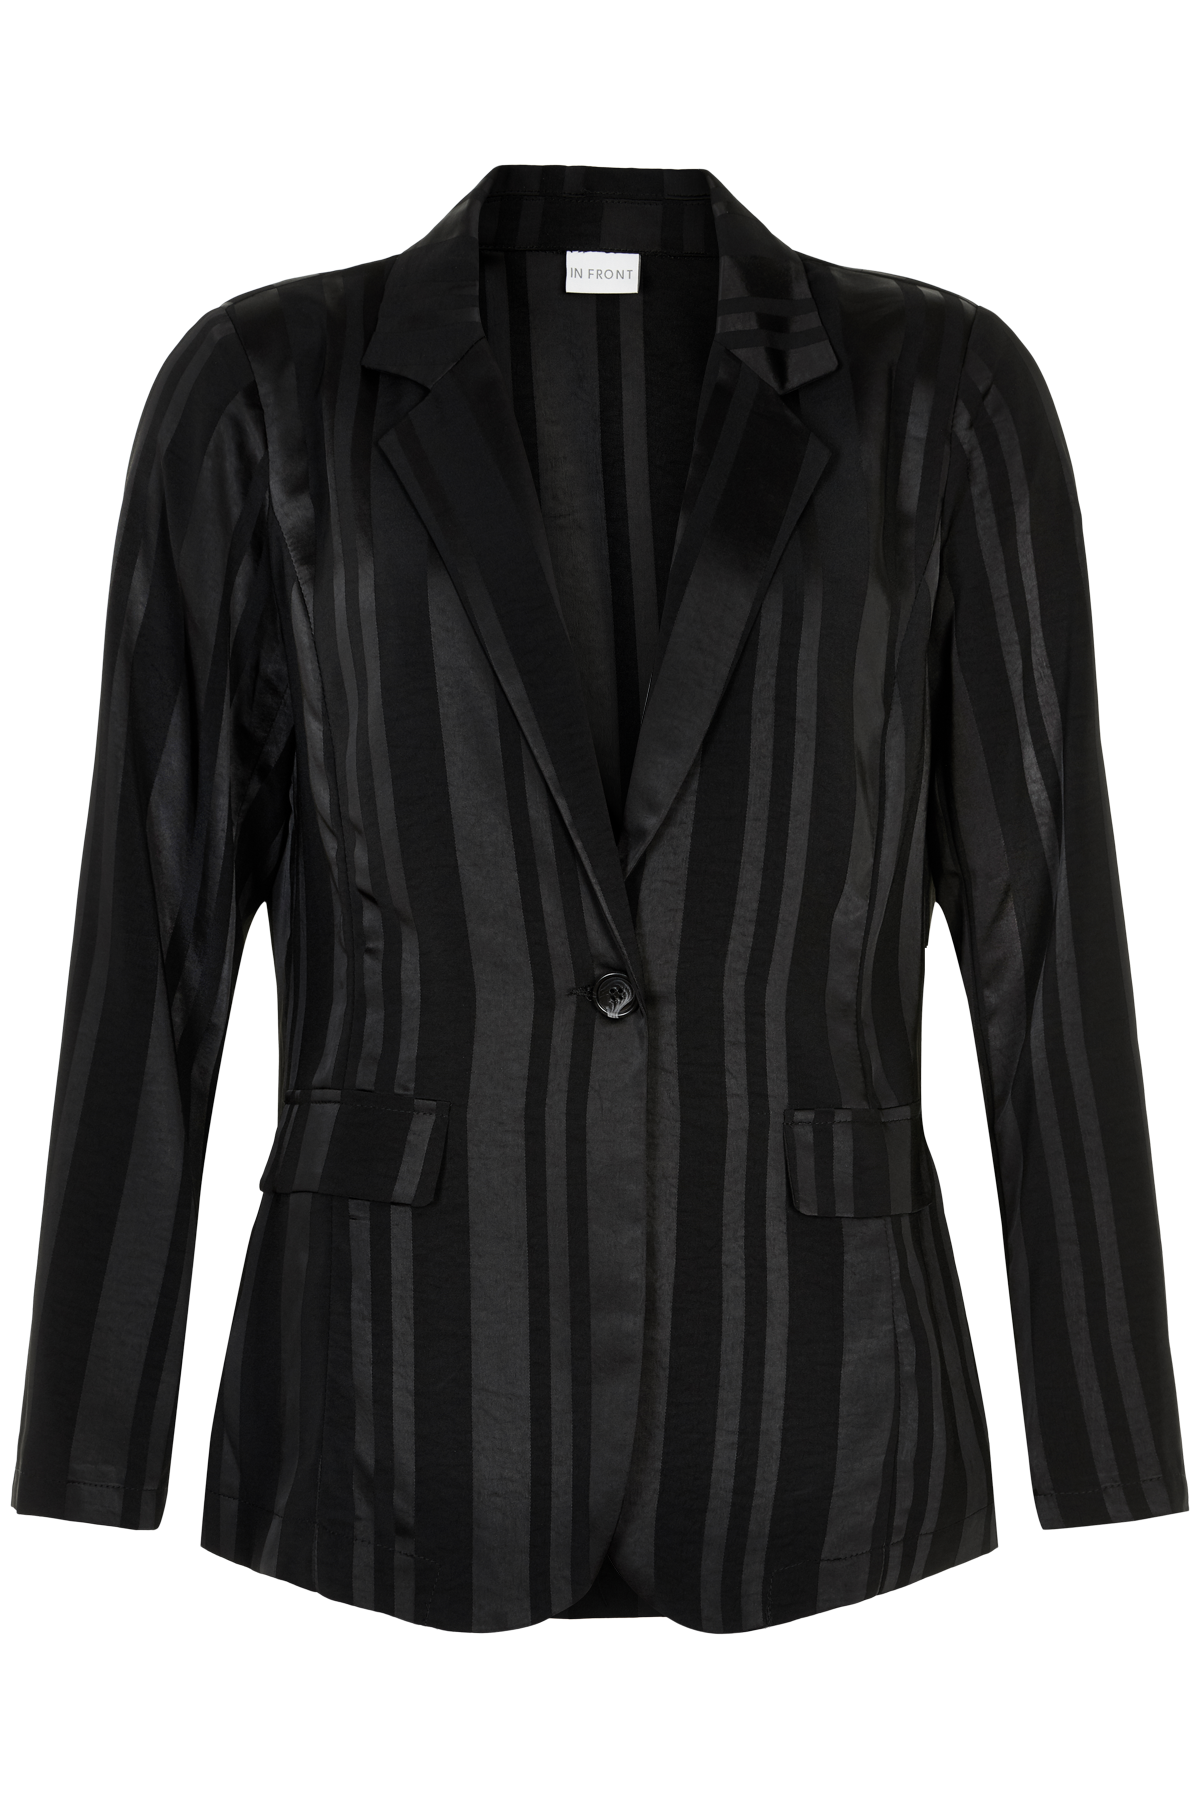 Image of   IN FRONT MIRA BLAZER 13572 (Black 999, S)